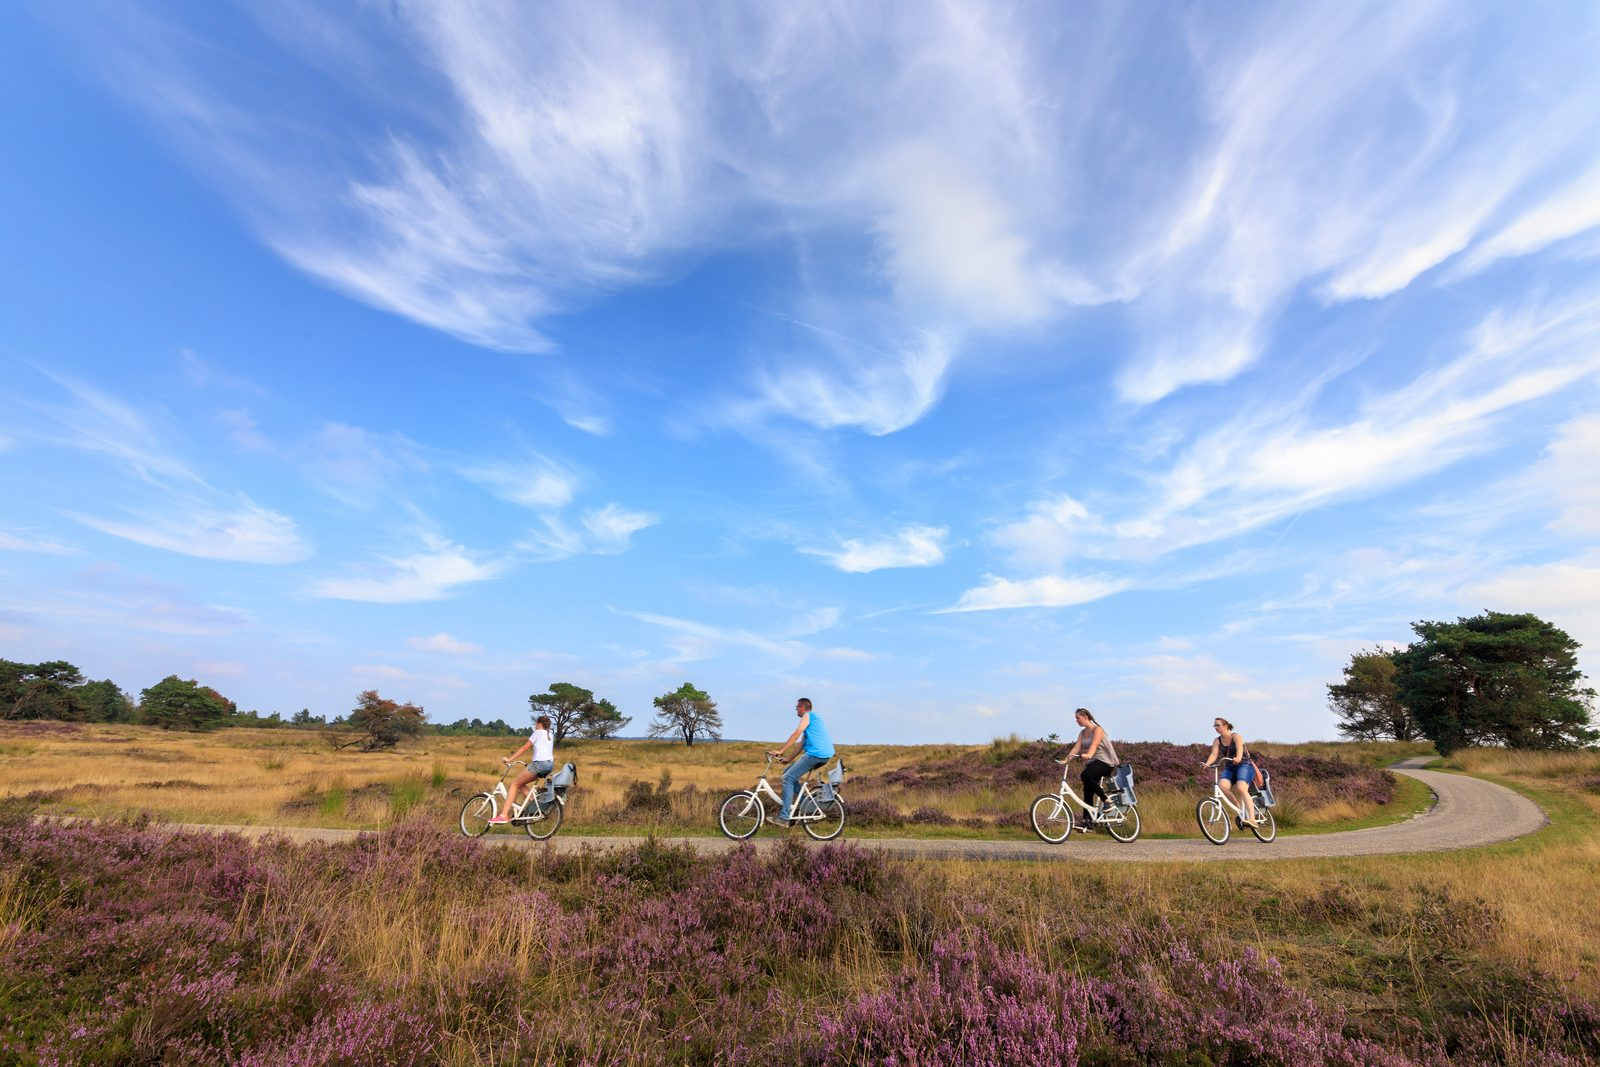 Nationalpark De Hoge Veluwe